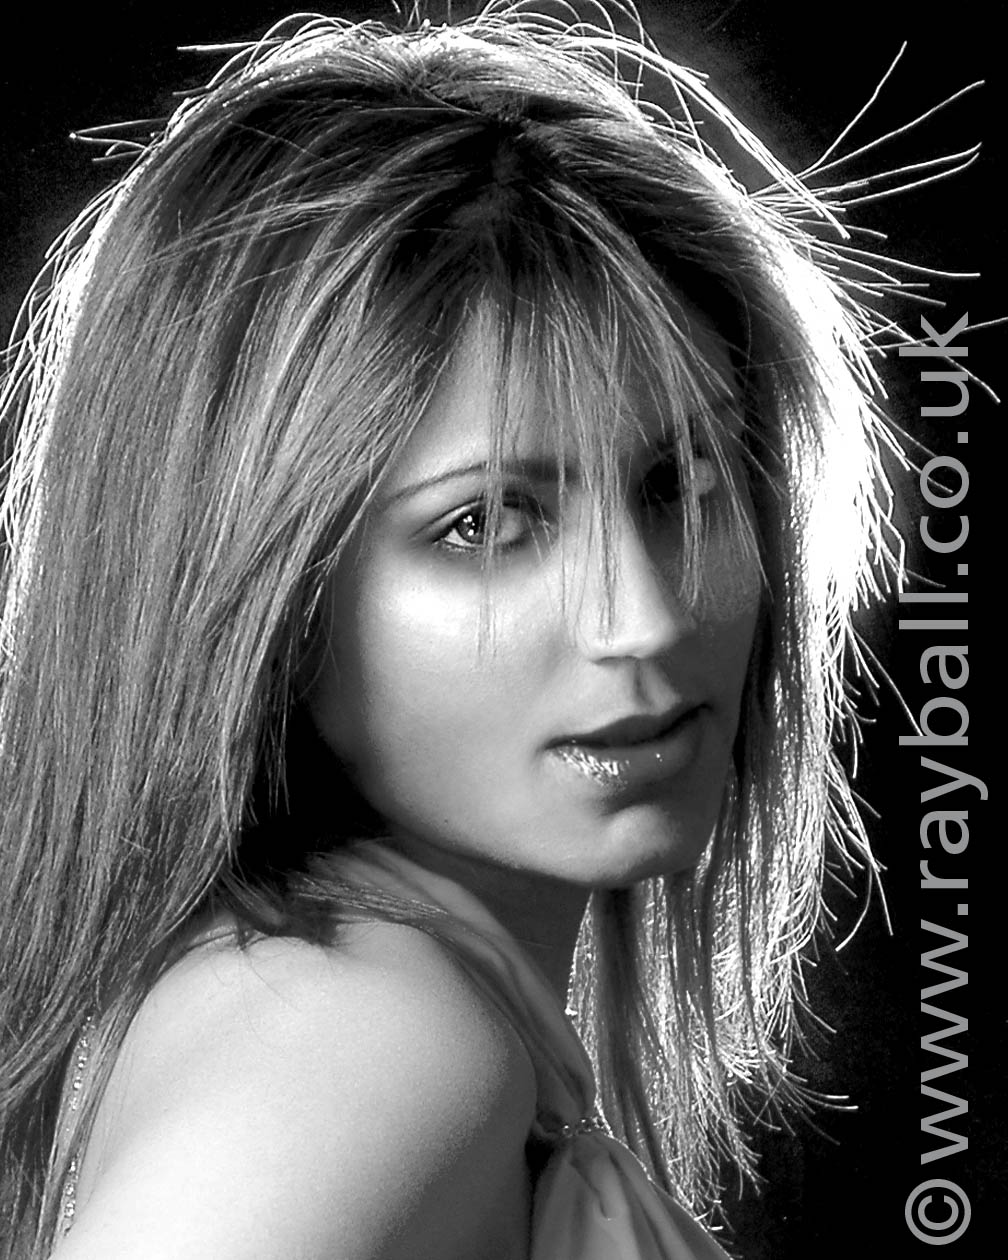 Black and white study of reigate model by Epsom Photography.